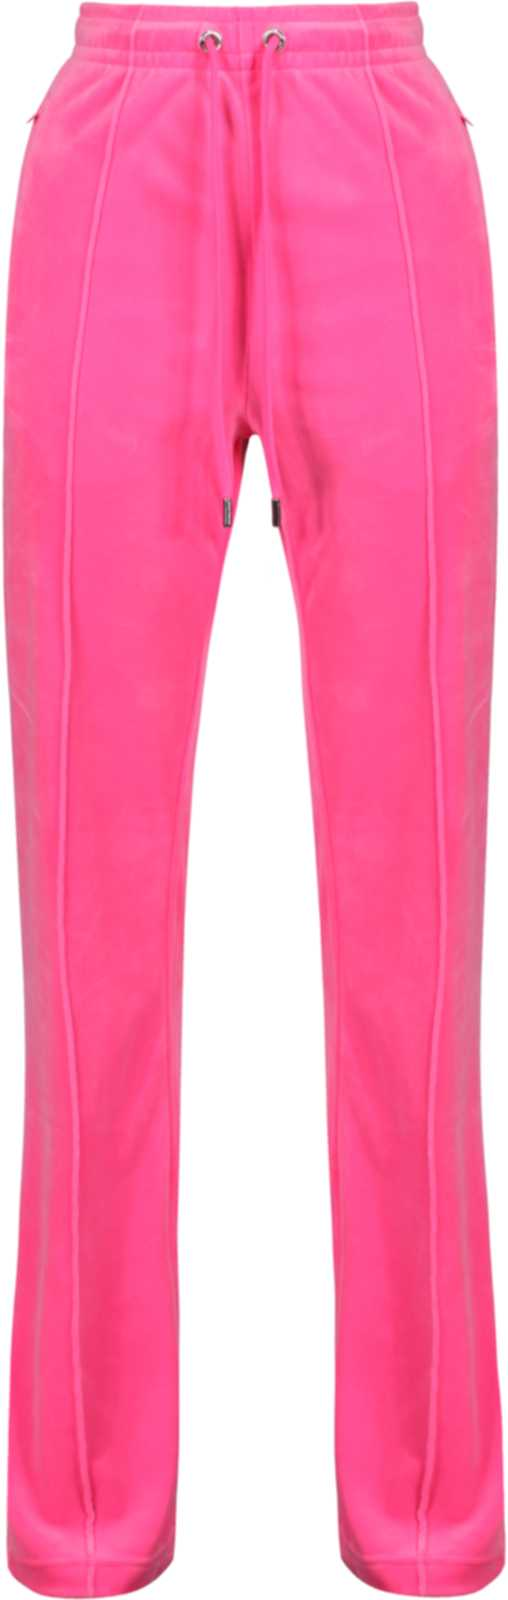 Juicy Couture Tina Velour Bottoms	Fluro Pink